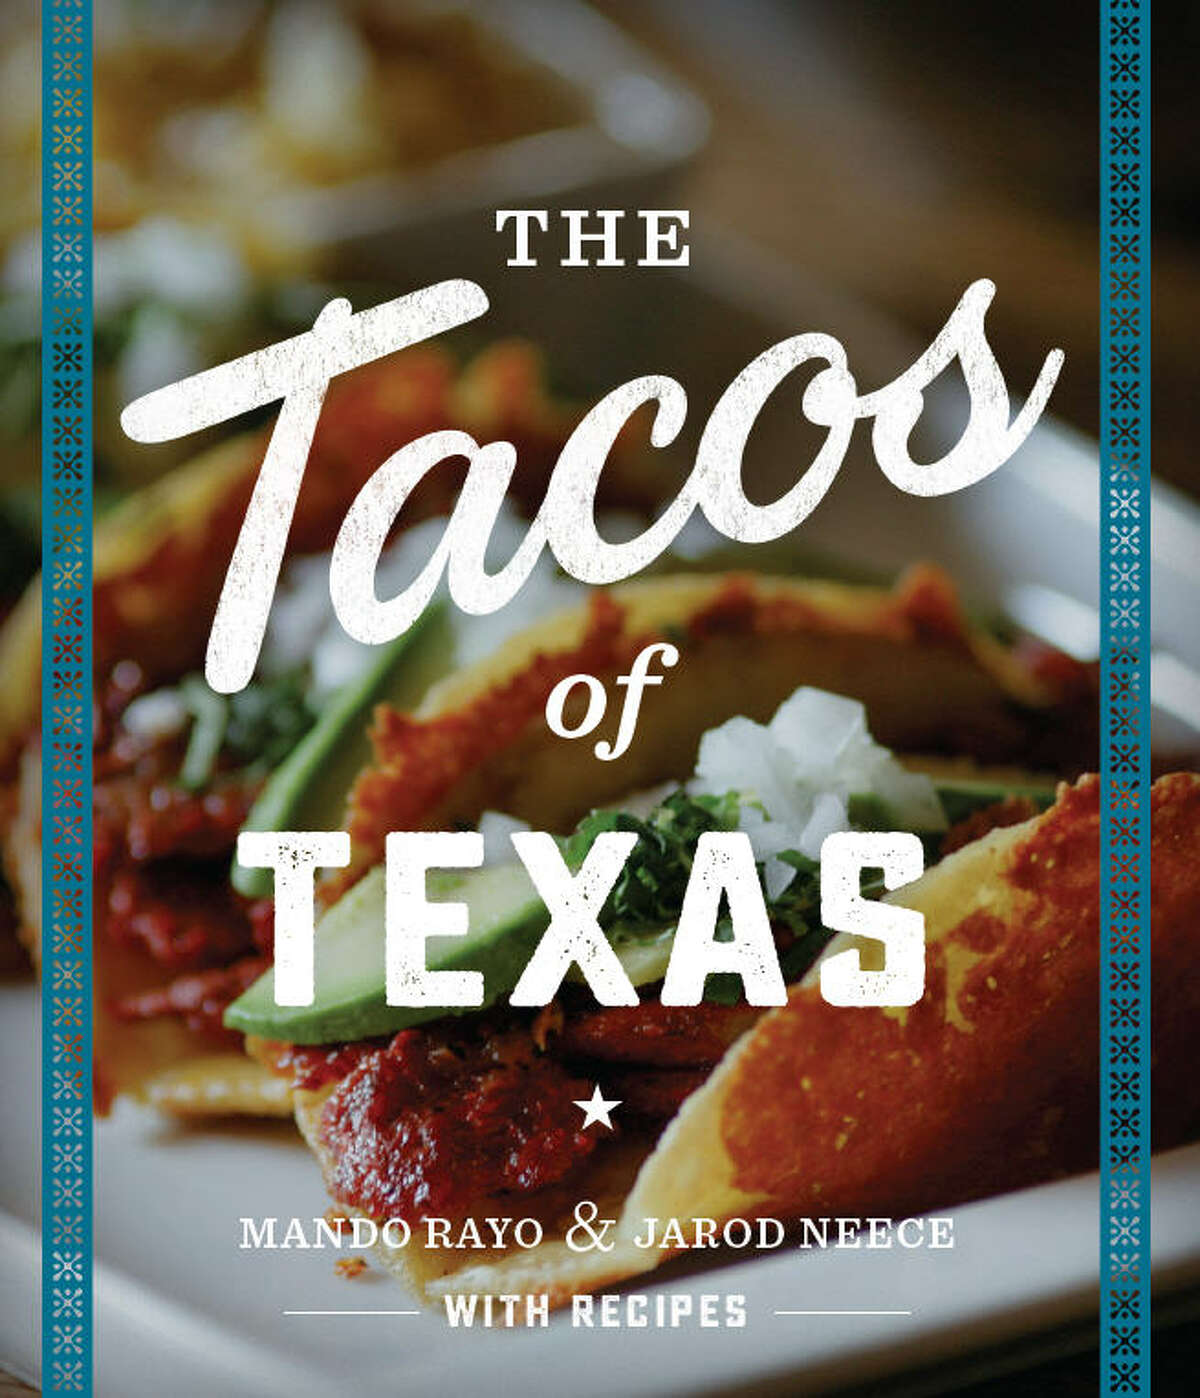 The three amigos!  According to the book, there are three distinct types of tacos in Texas: Traditional, Tex-Mex and New Americano.